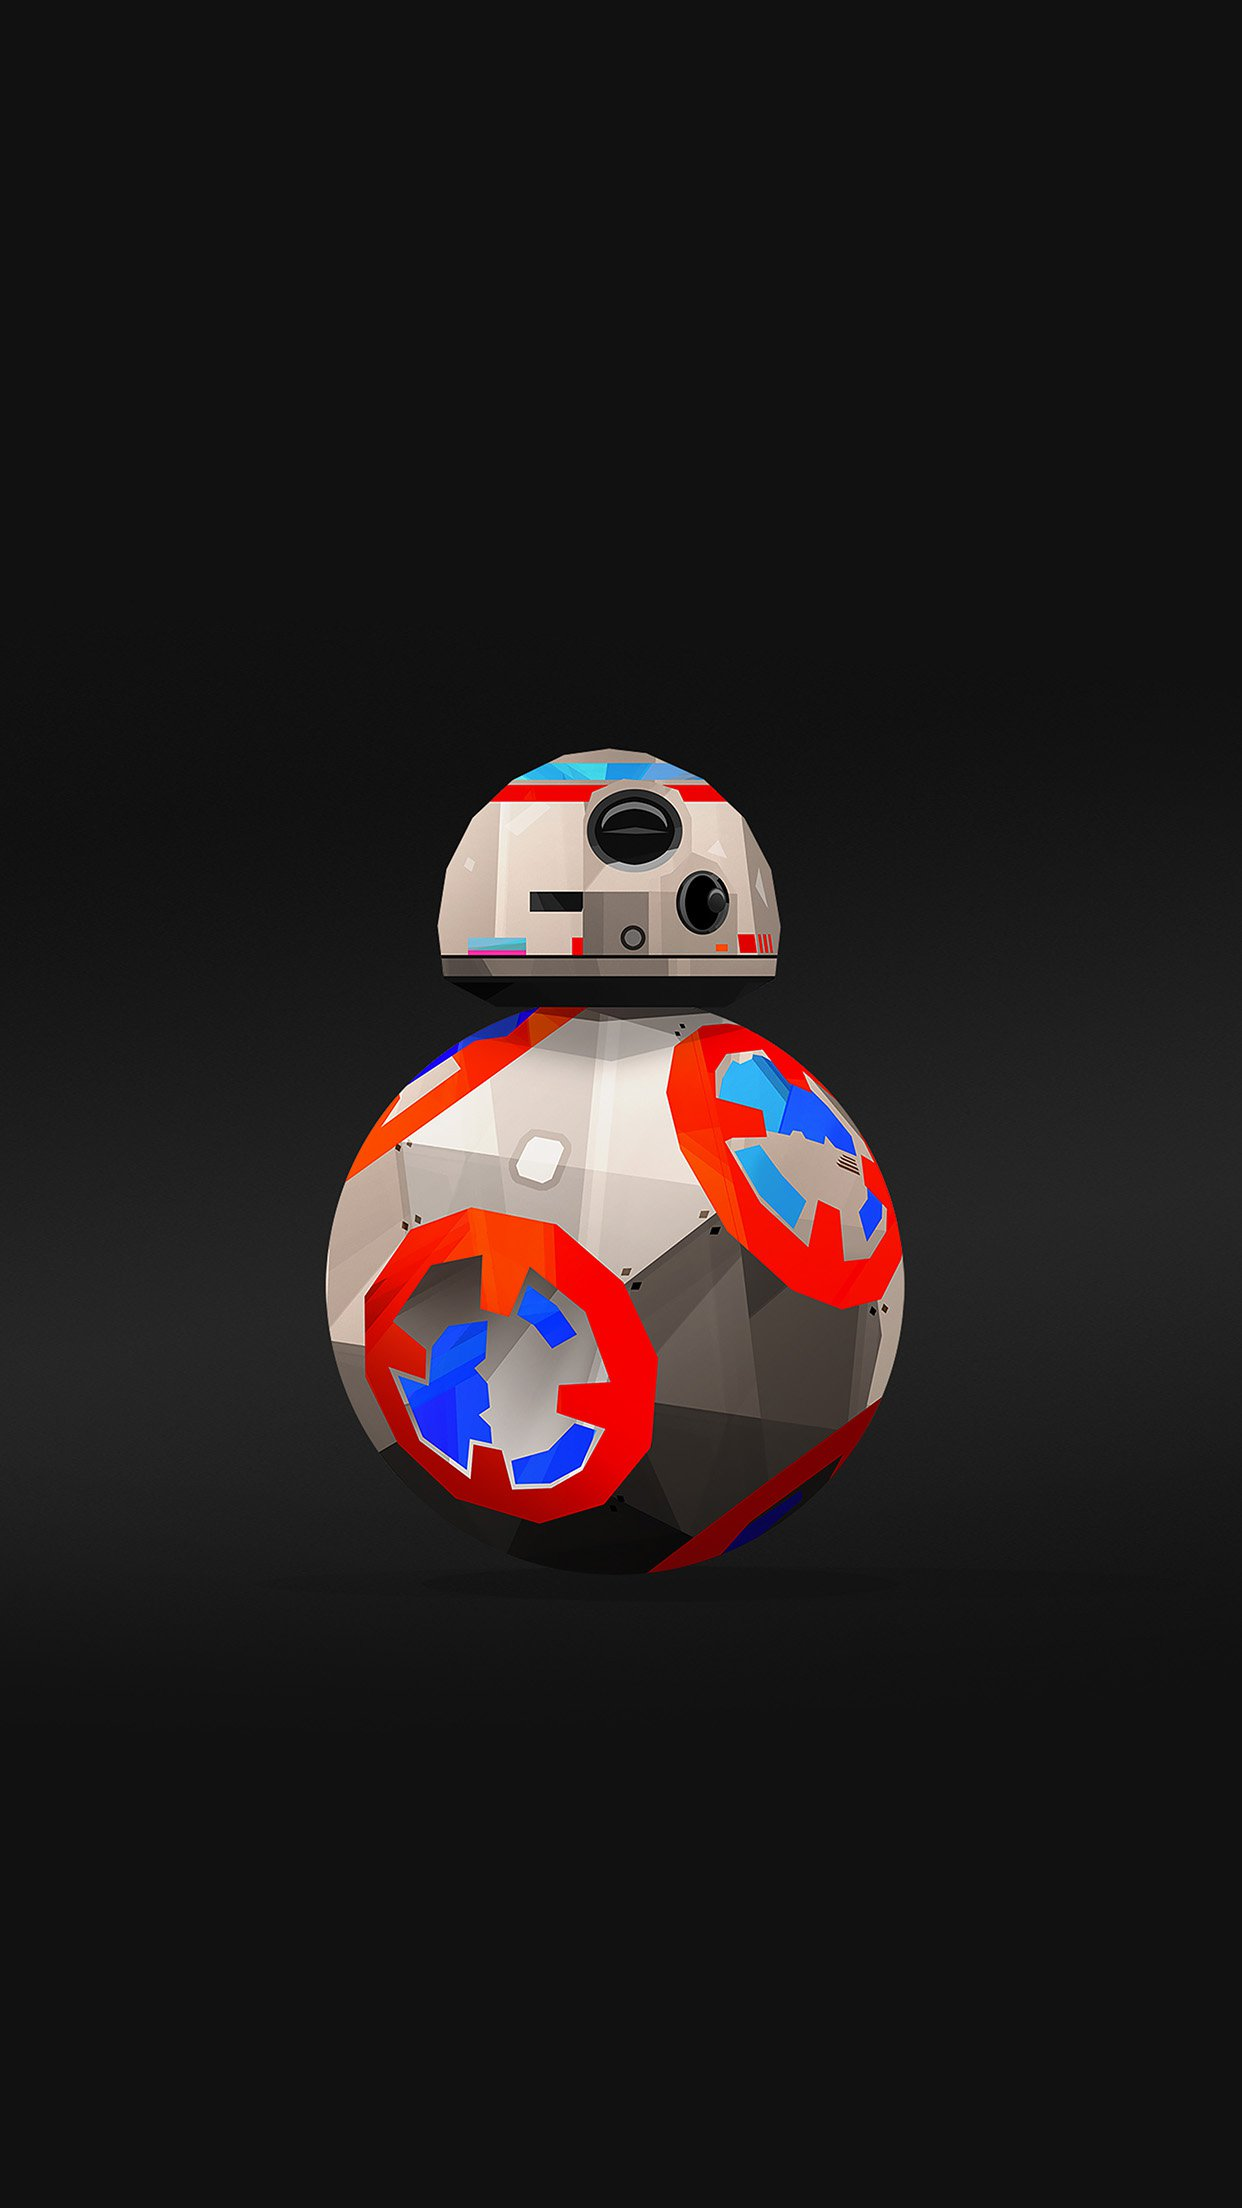 Bb 8 Droid Starwars Robot Art Film Android Wallpaper Best Star Wars Wallpapers Iphone 1242x2208 Wallpaper Teahub Io